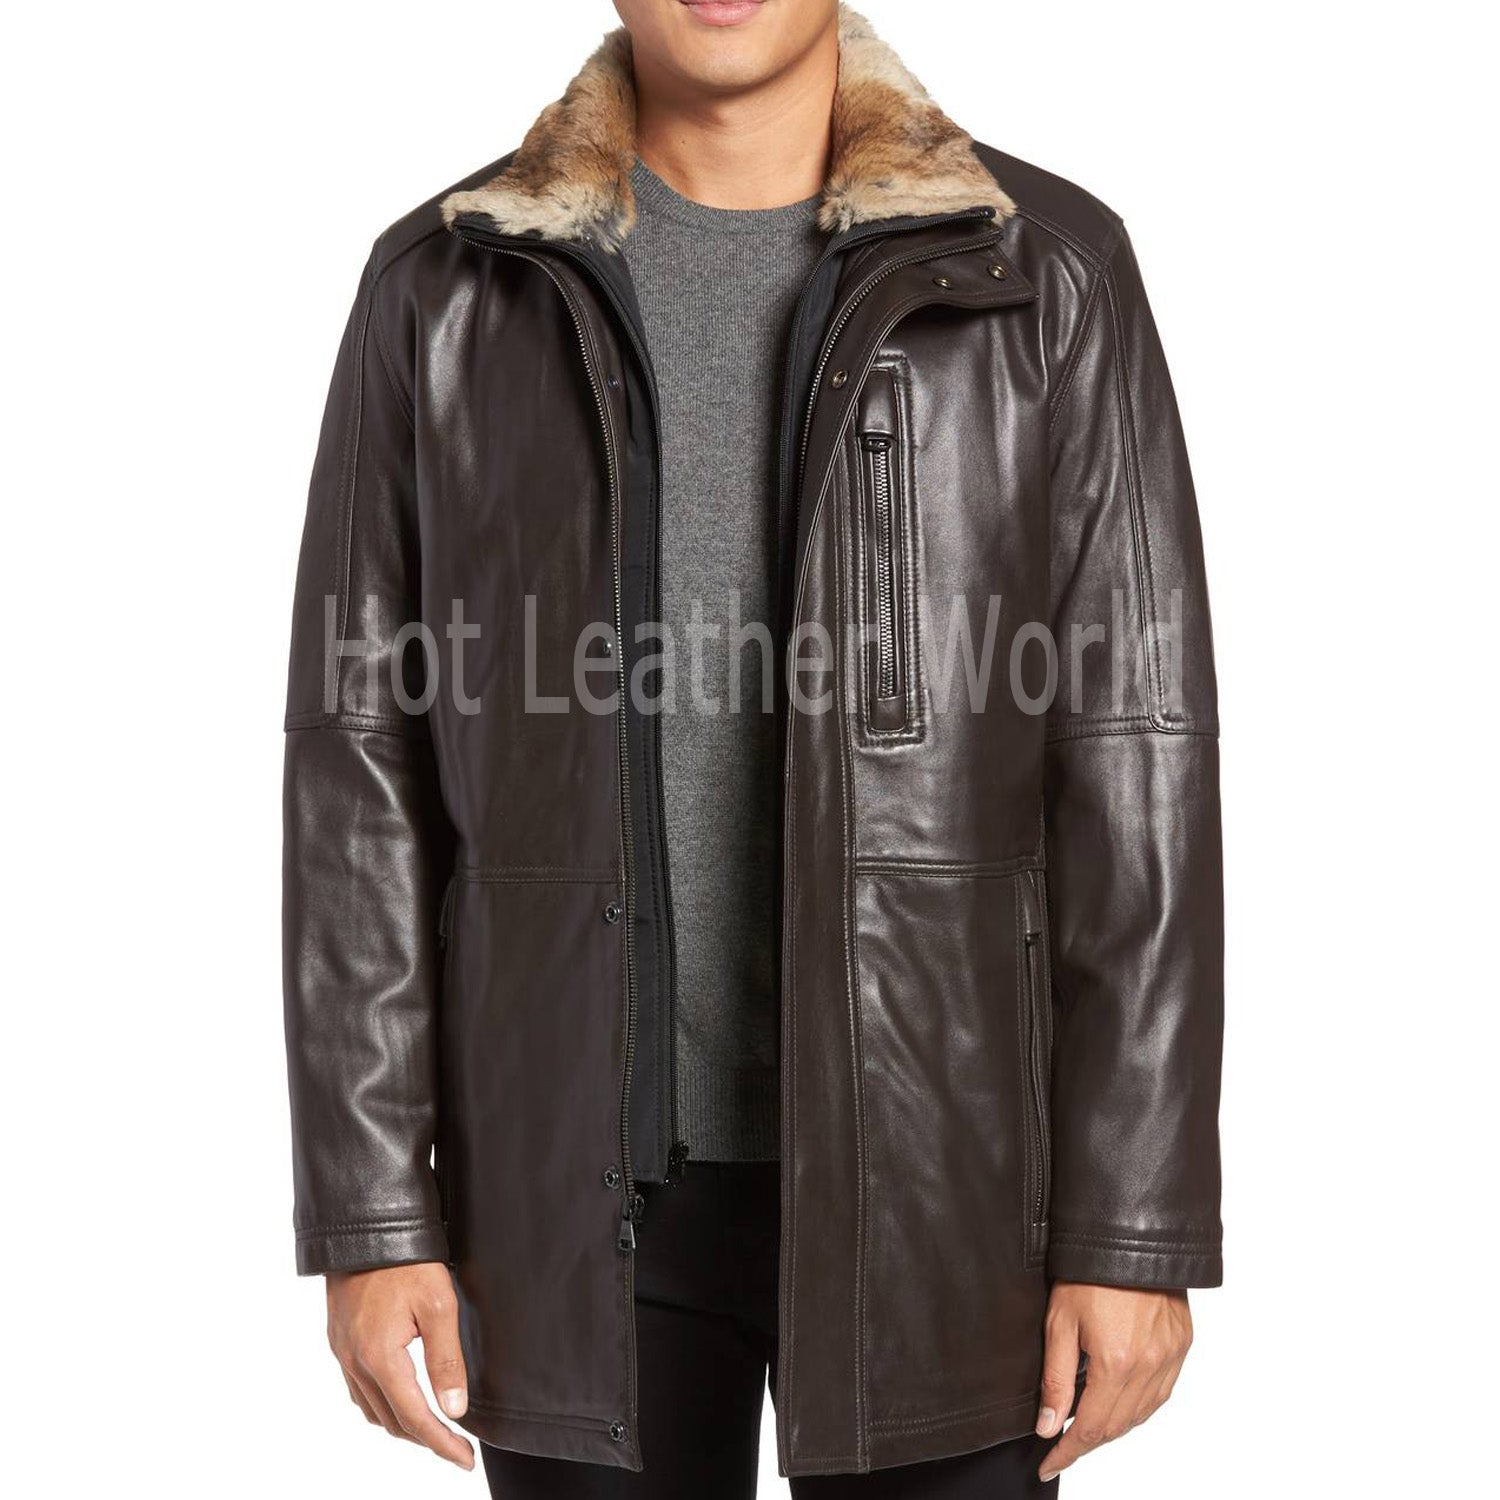 Faux Fur Leather Coat For Men -  HOTLEATHERWORLD